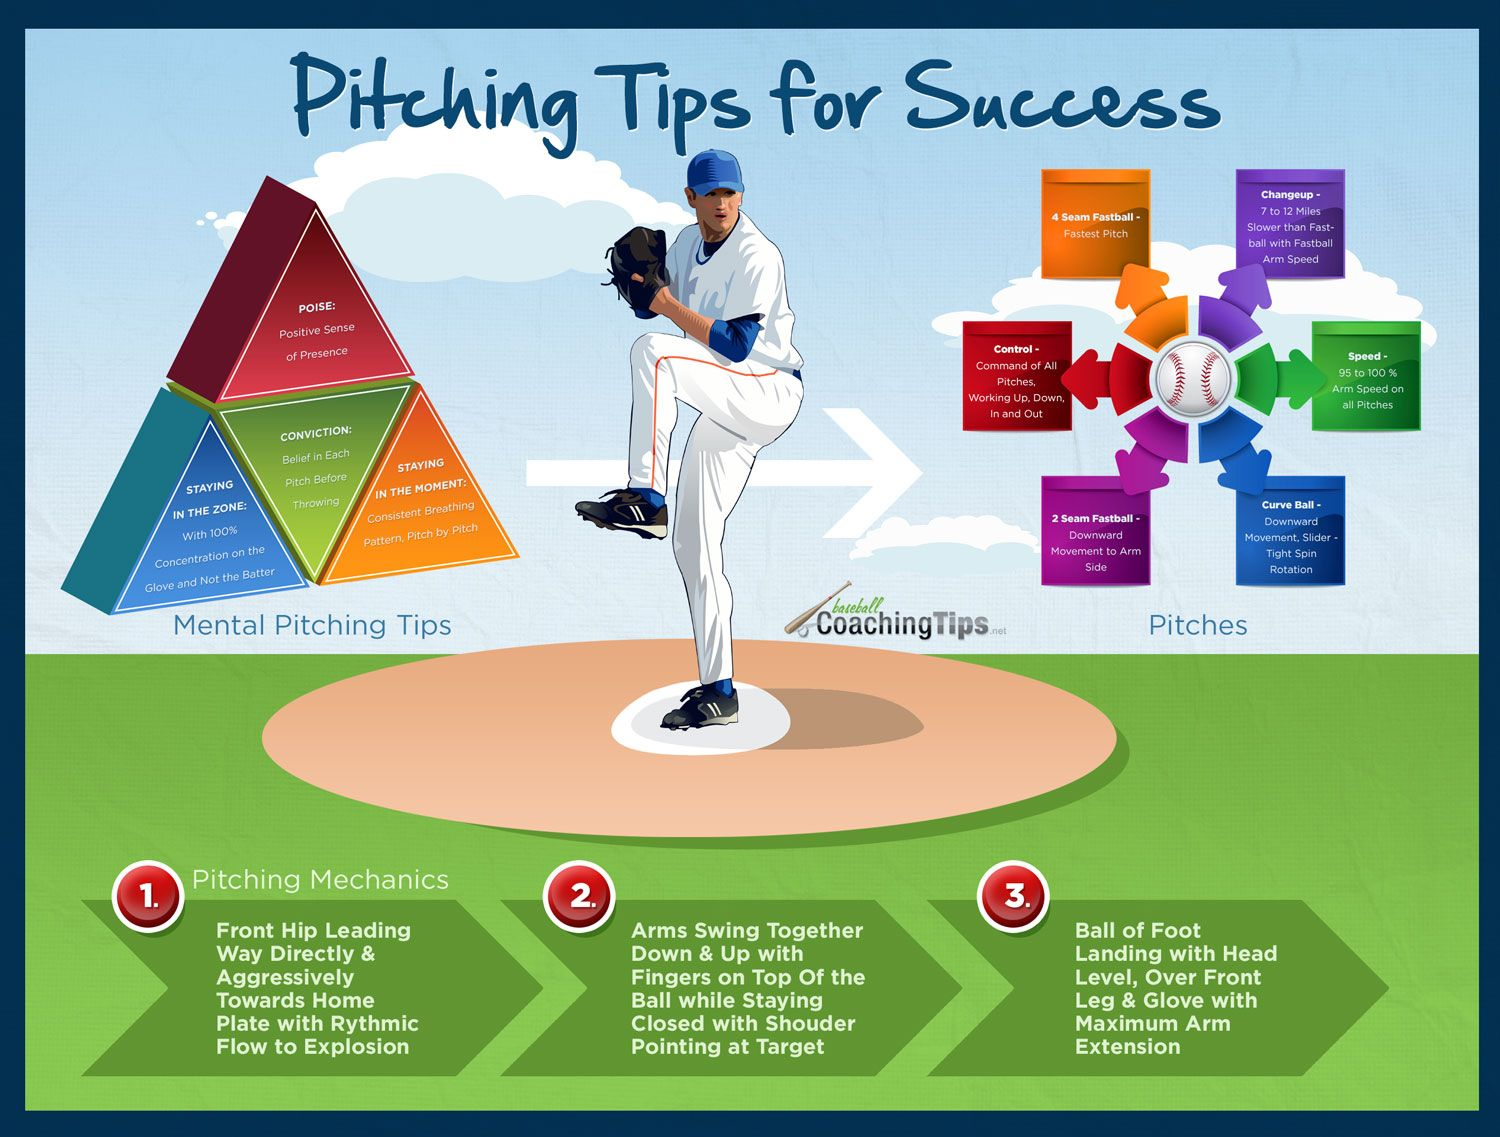 Pitching Tips For Success Baseball Coaching Tips Baseball Tips Baseball Training Baseball Injuries